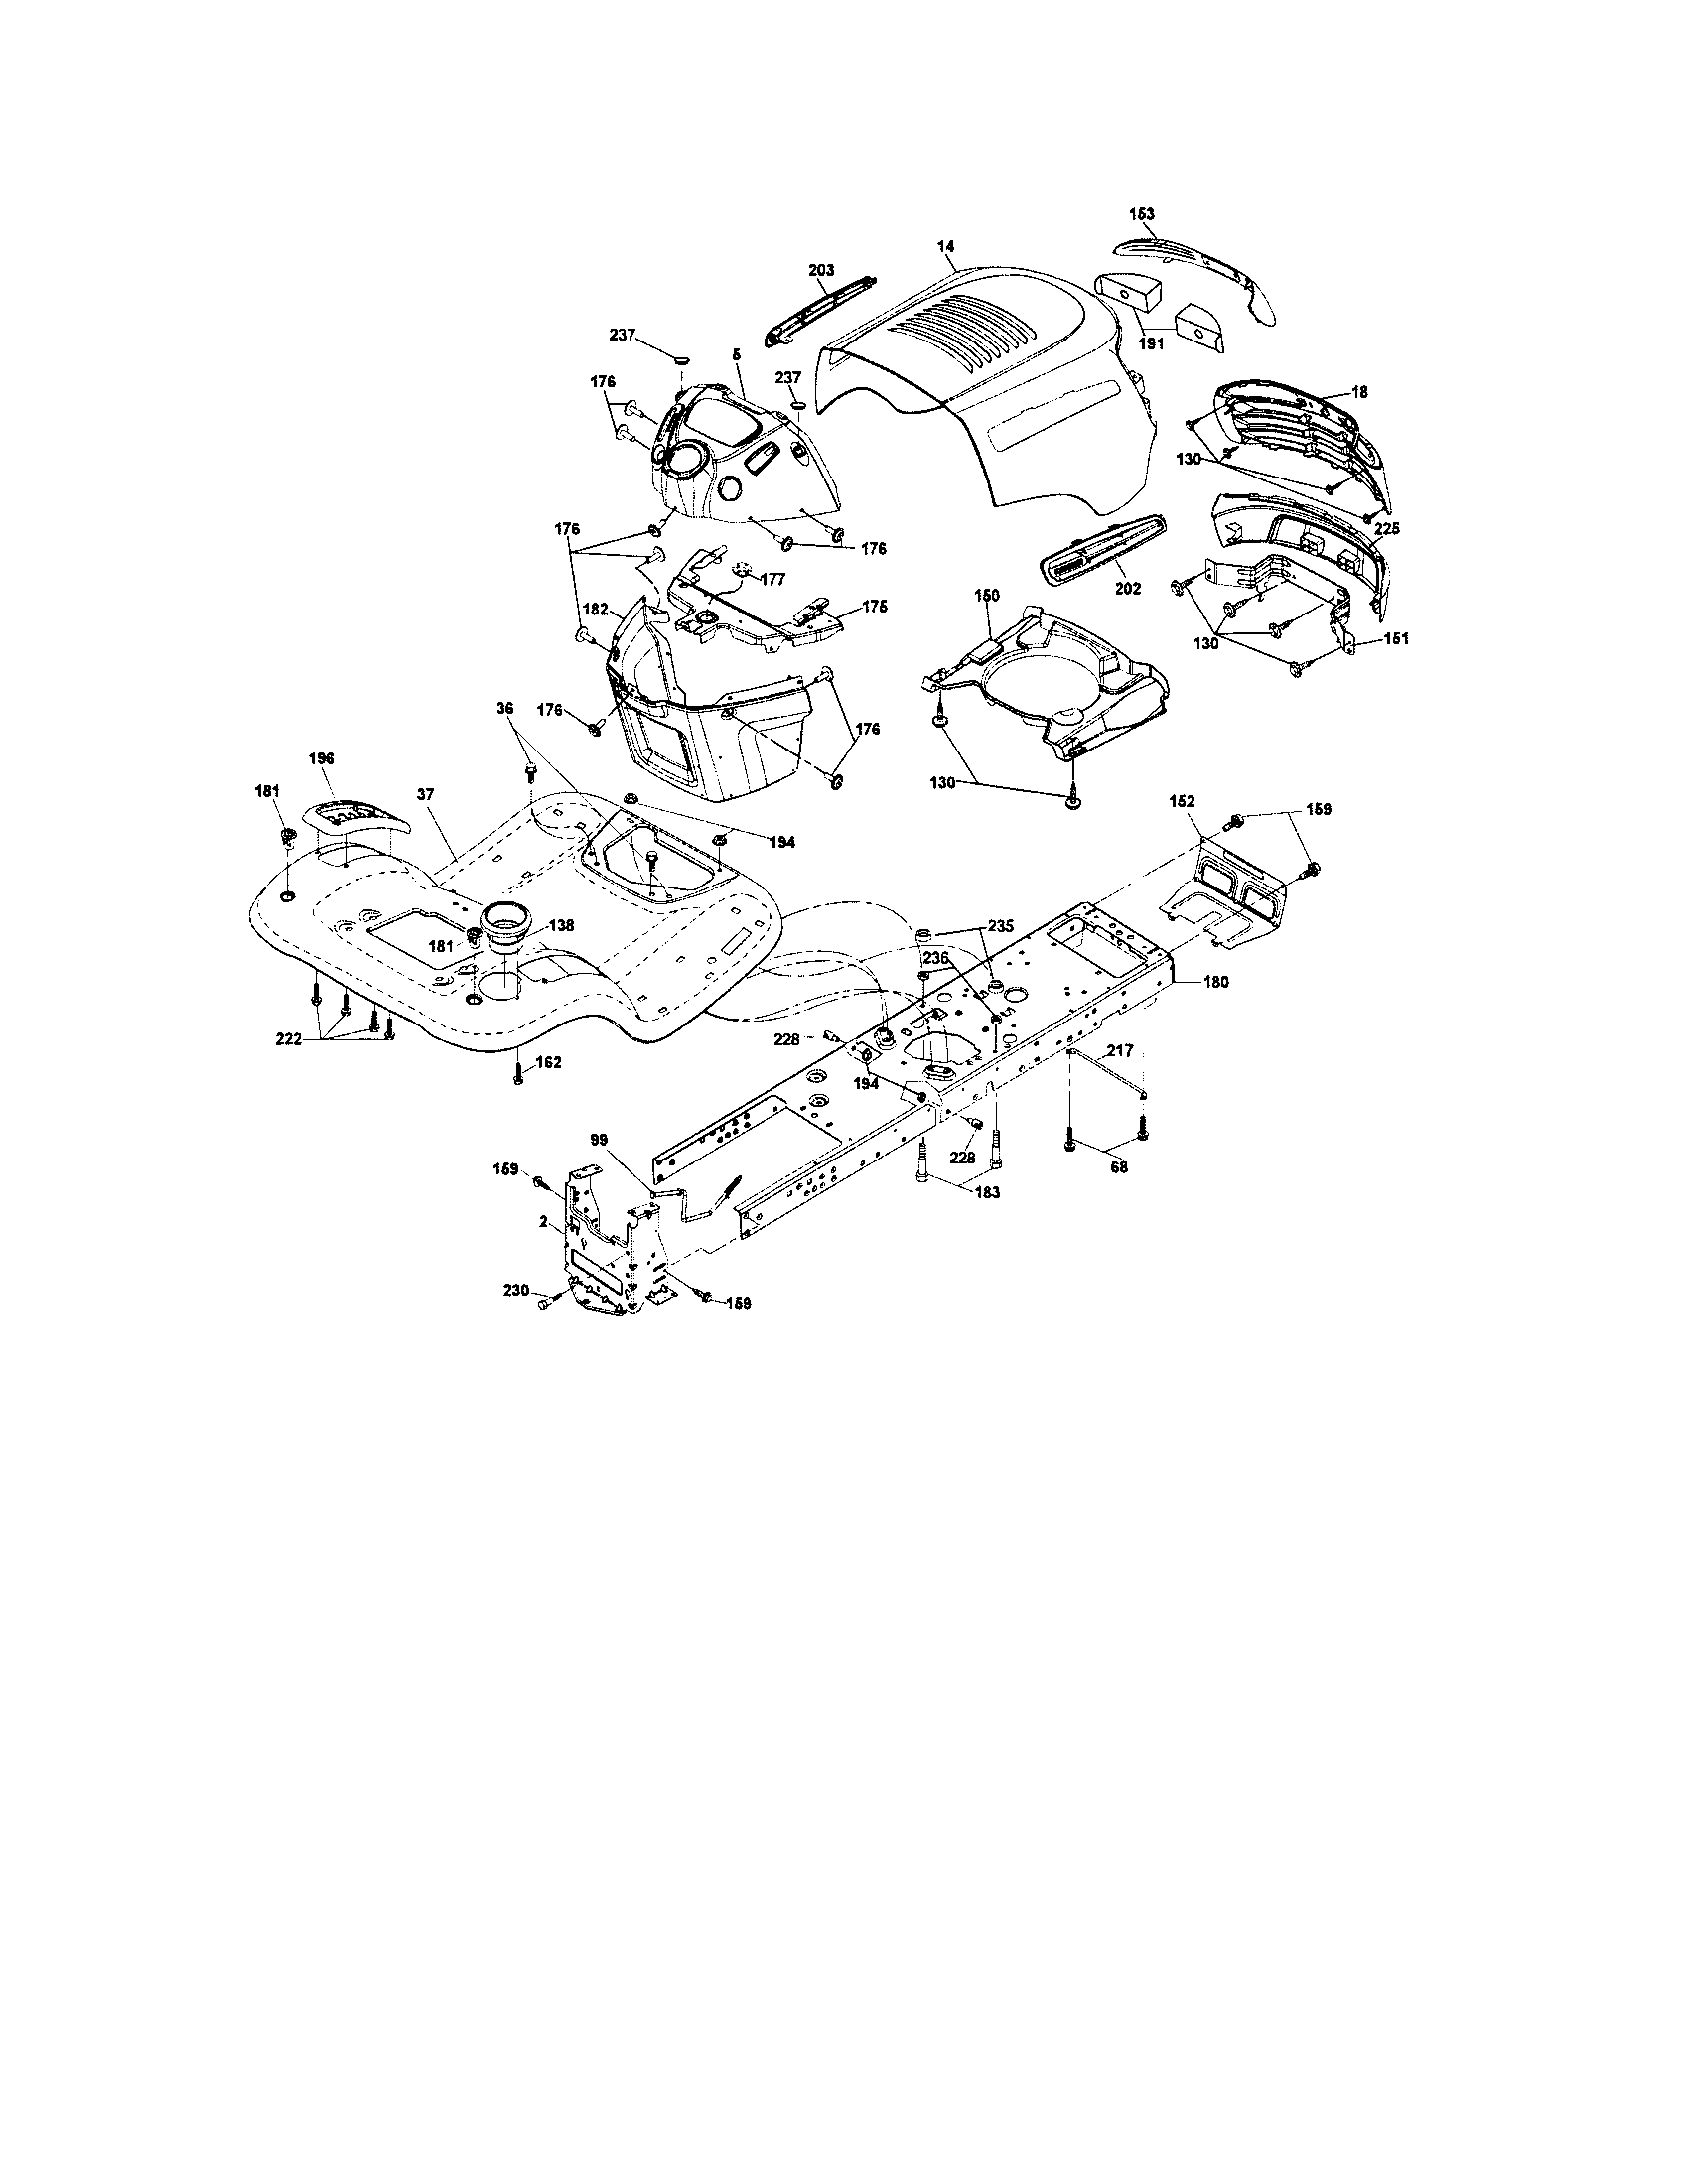 Craftsman model 917287120 lawn, tractor genuine parts